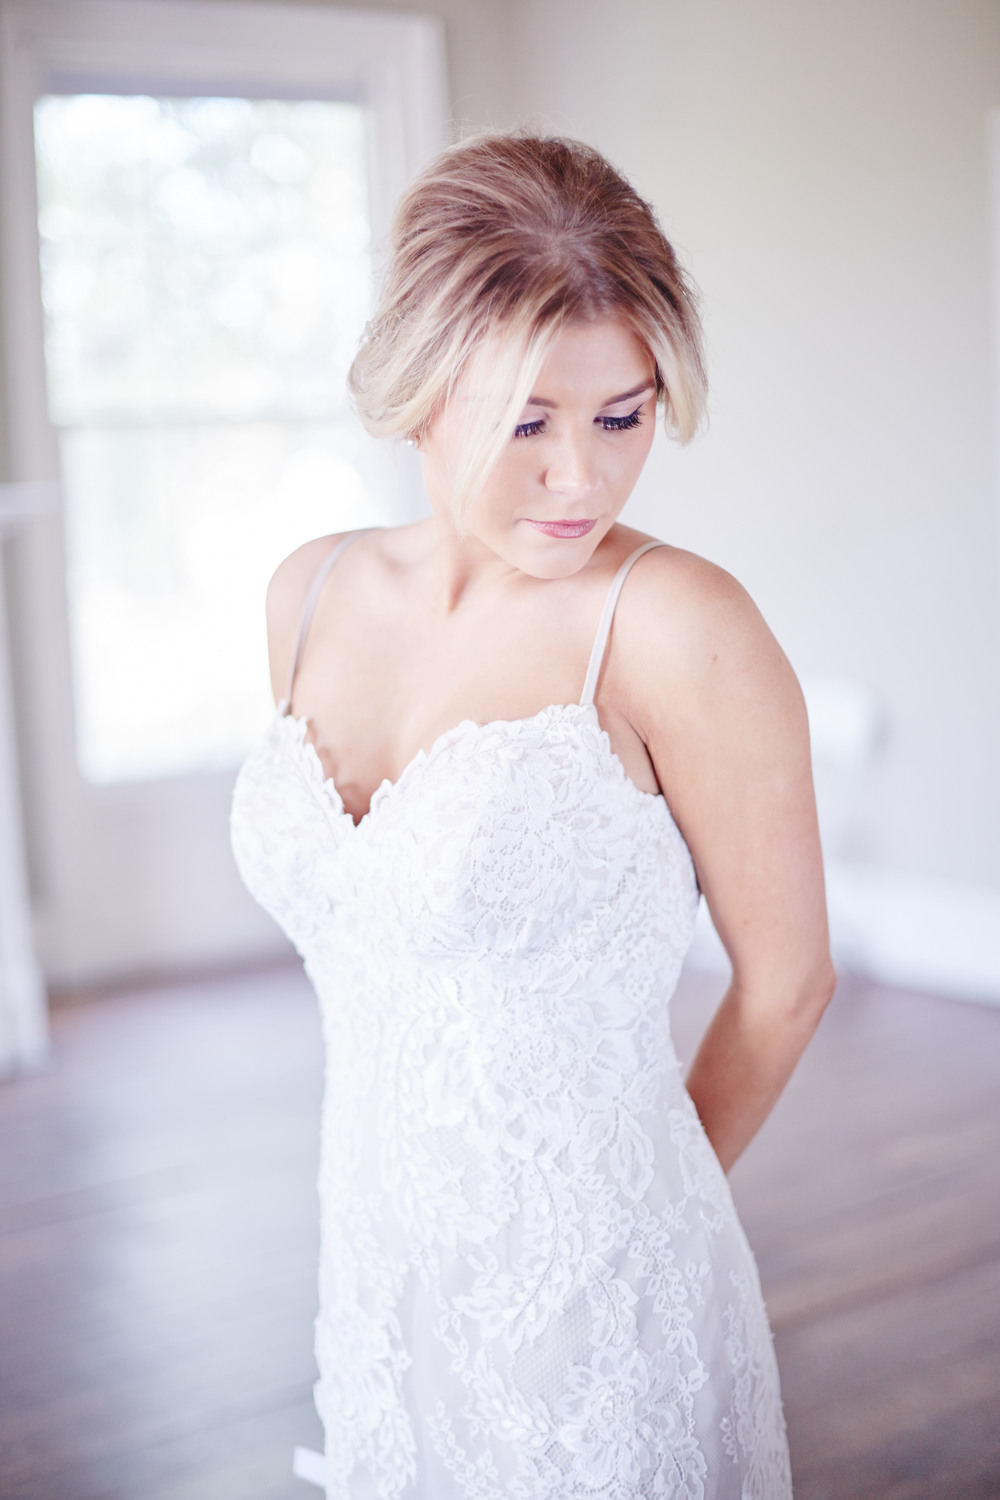 Styled_Session_Becca_Bridal_Portraits_Sarah_Tau_Photography_HOB_Studio_285 56.jpg